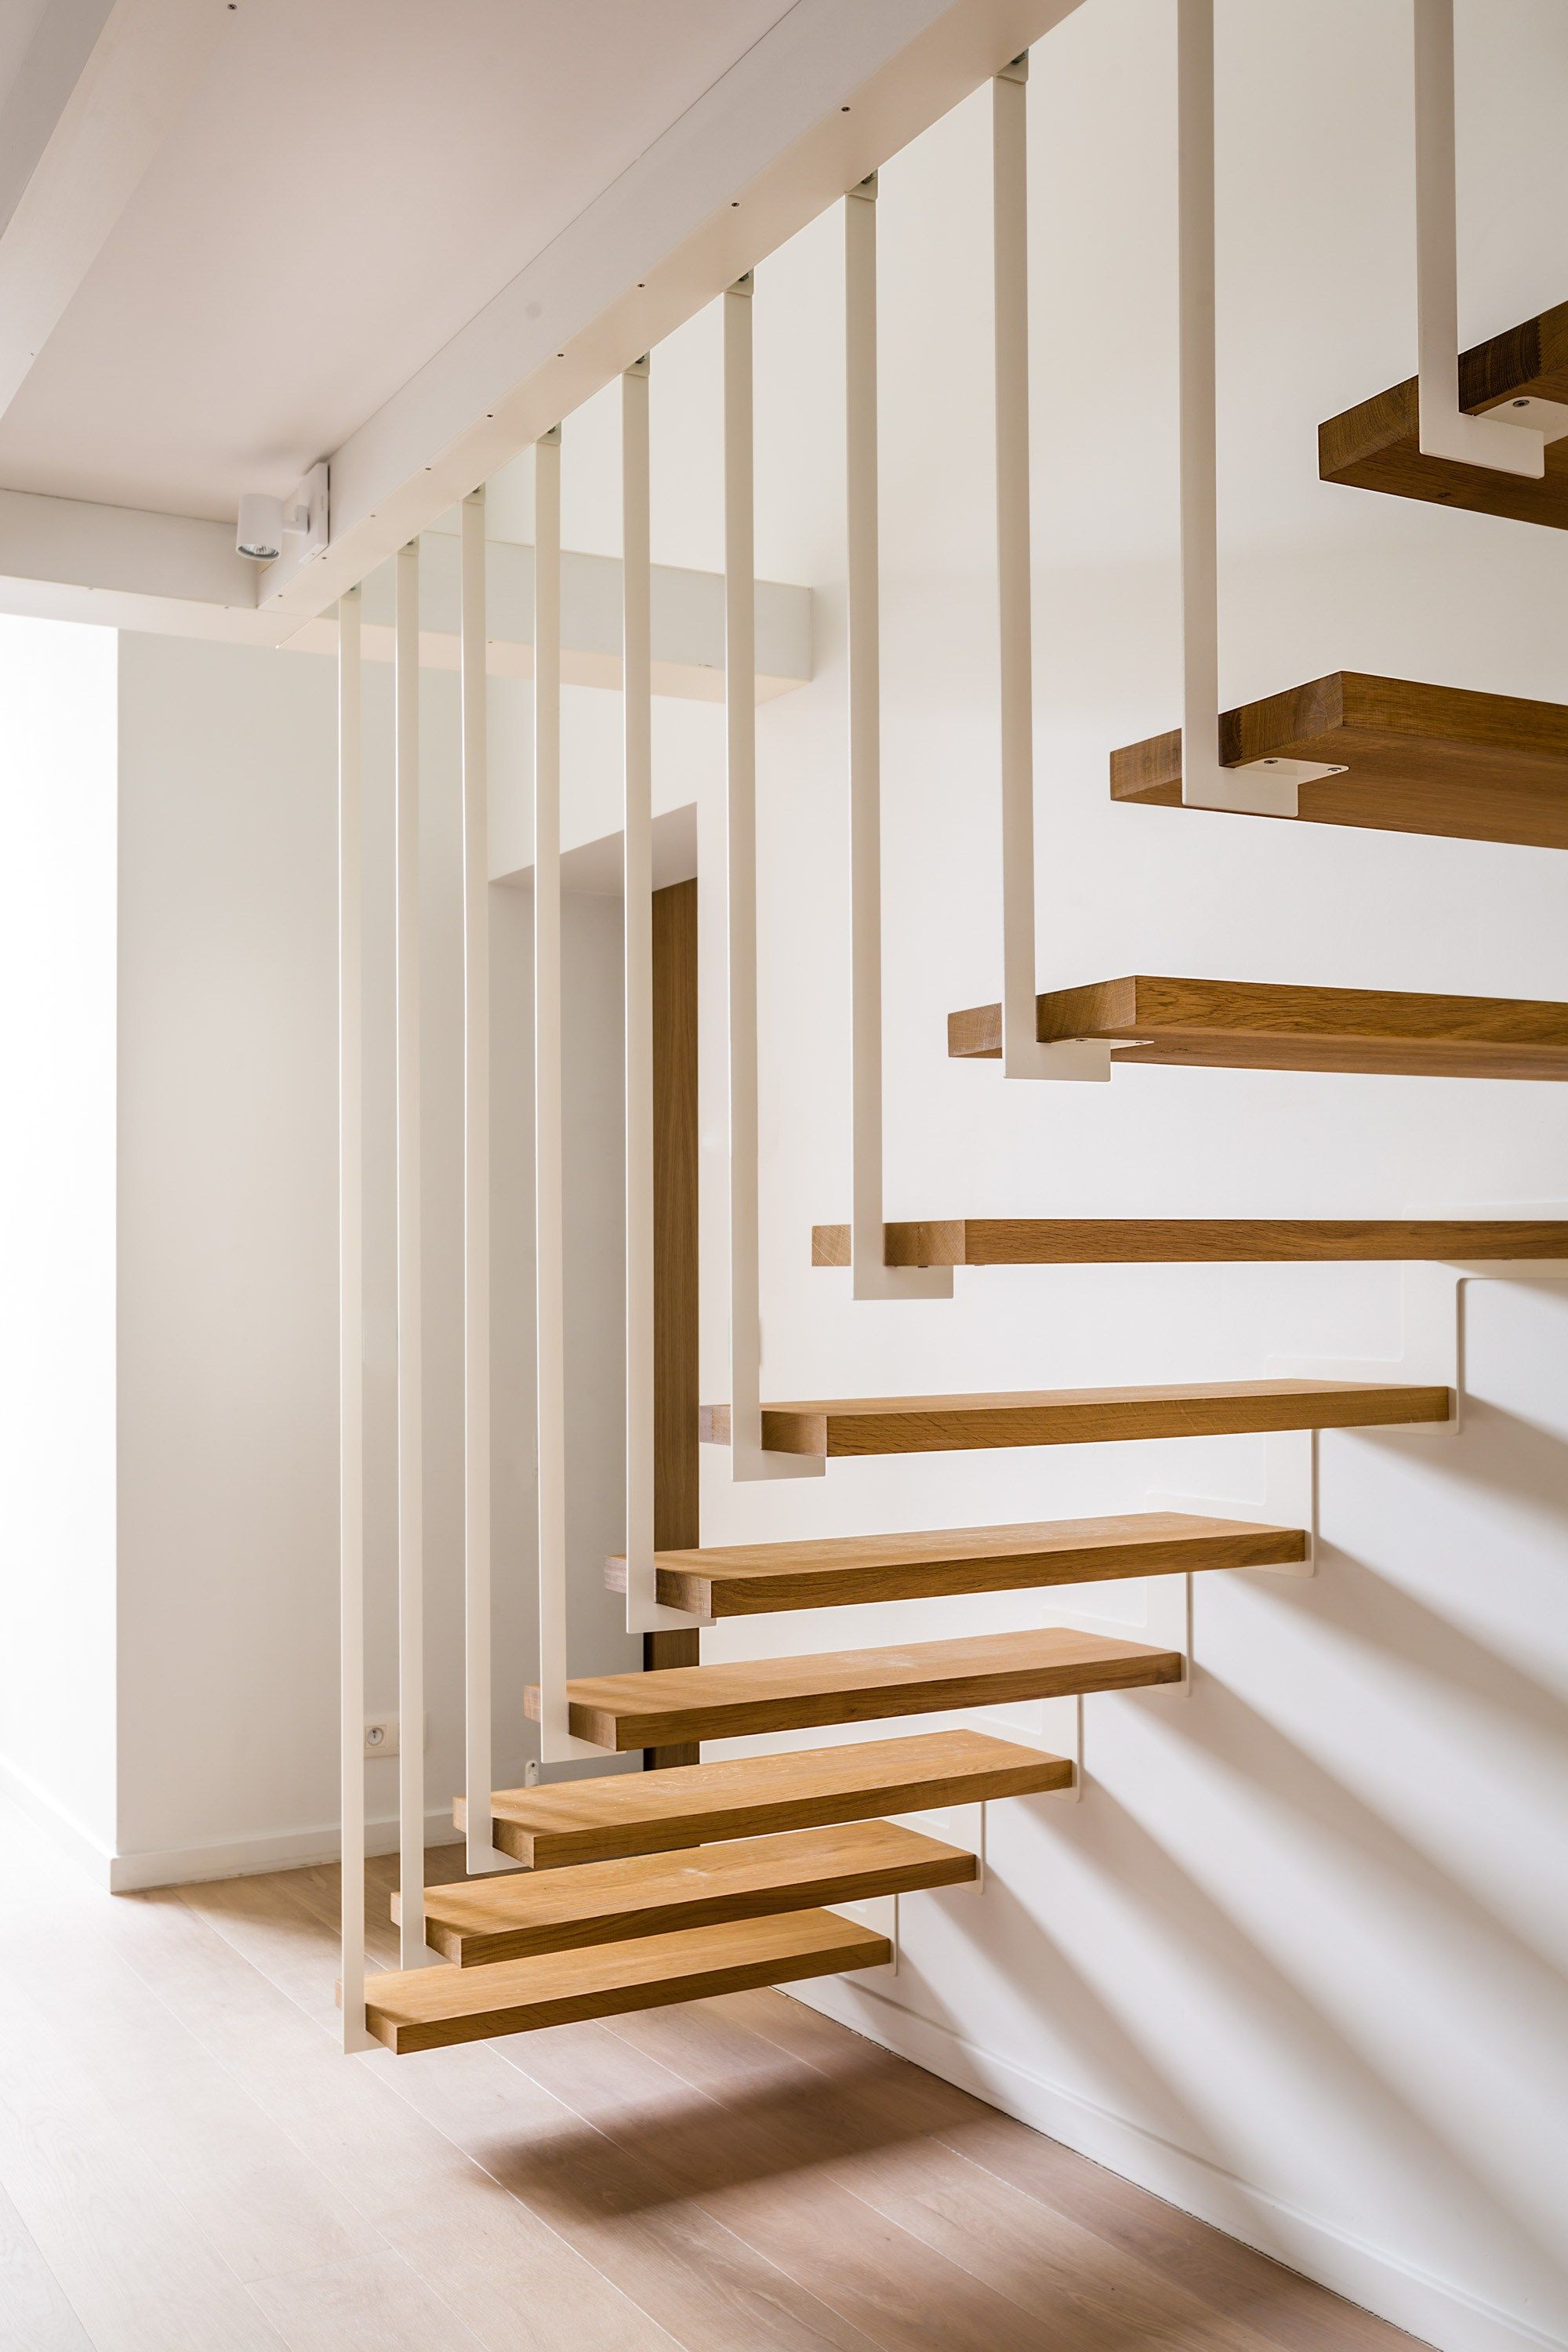 Open Staircase Design The World 39s Most Dramatic Stairs Open Staircase Wood